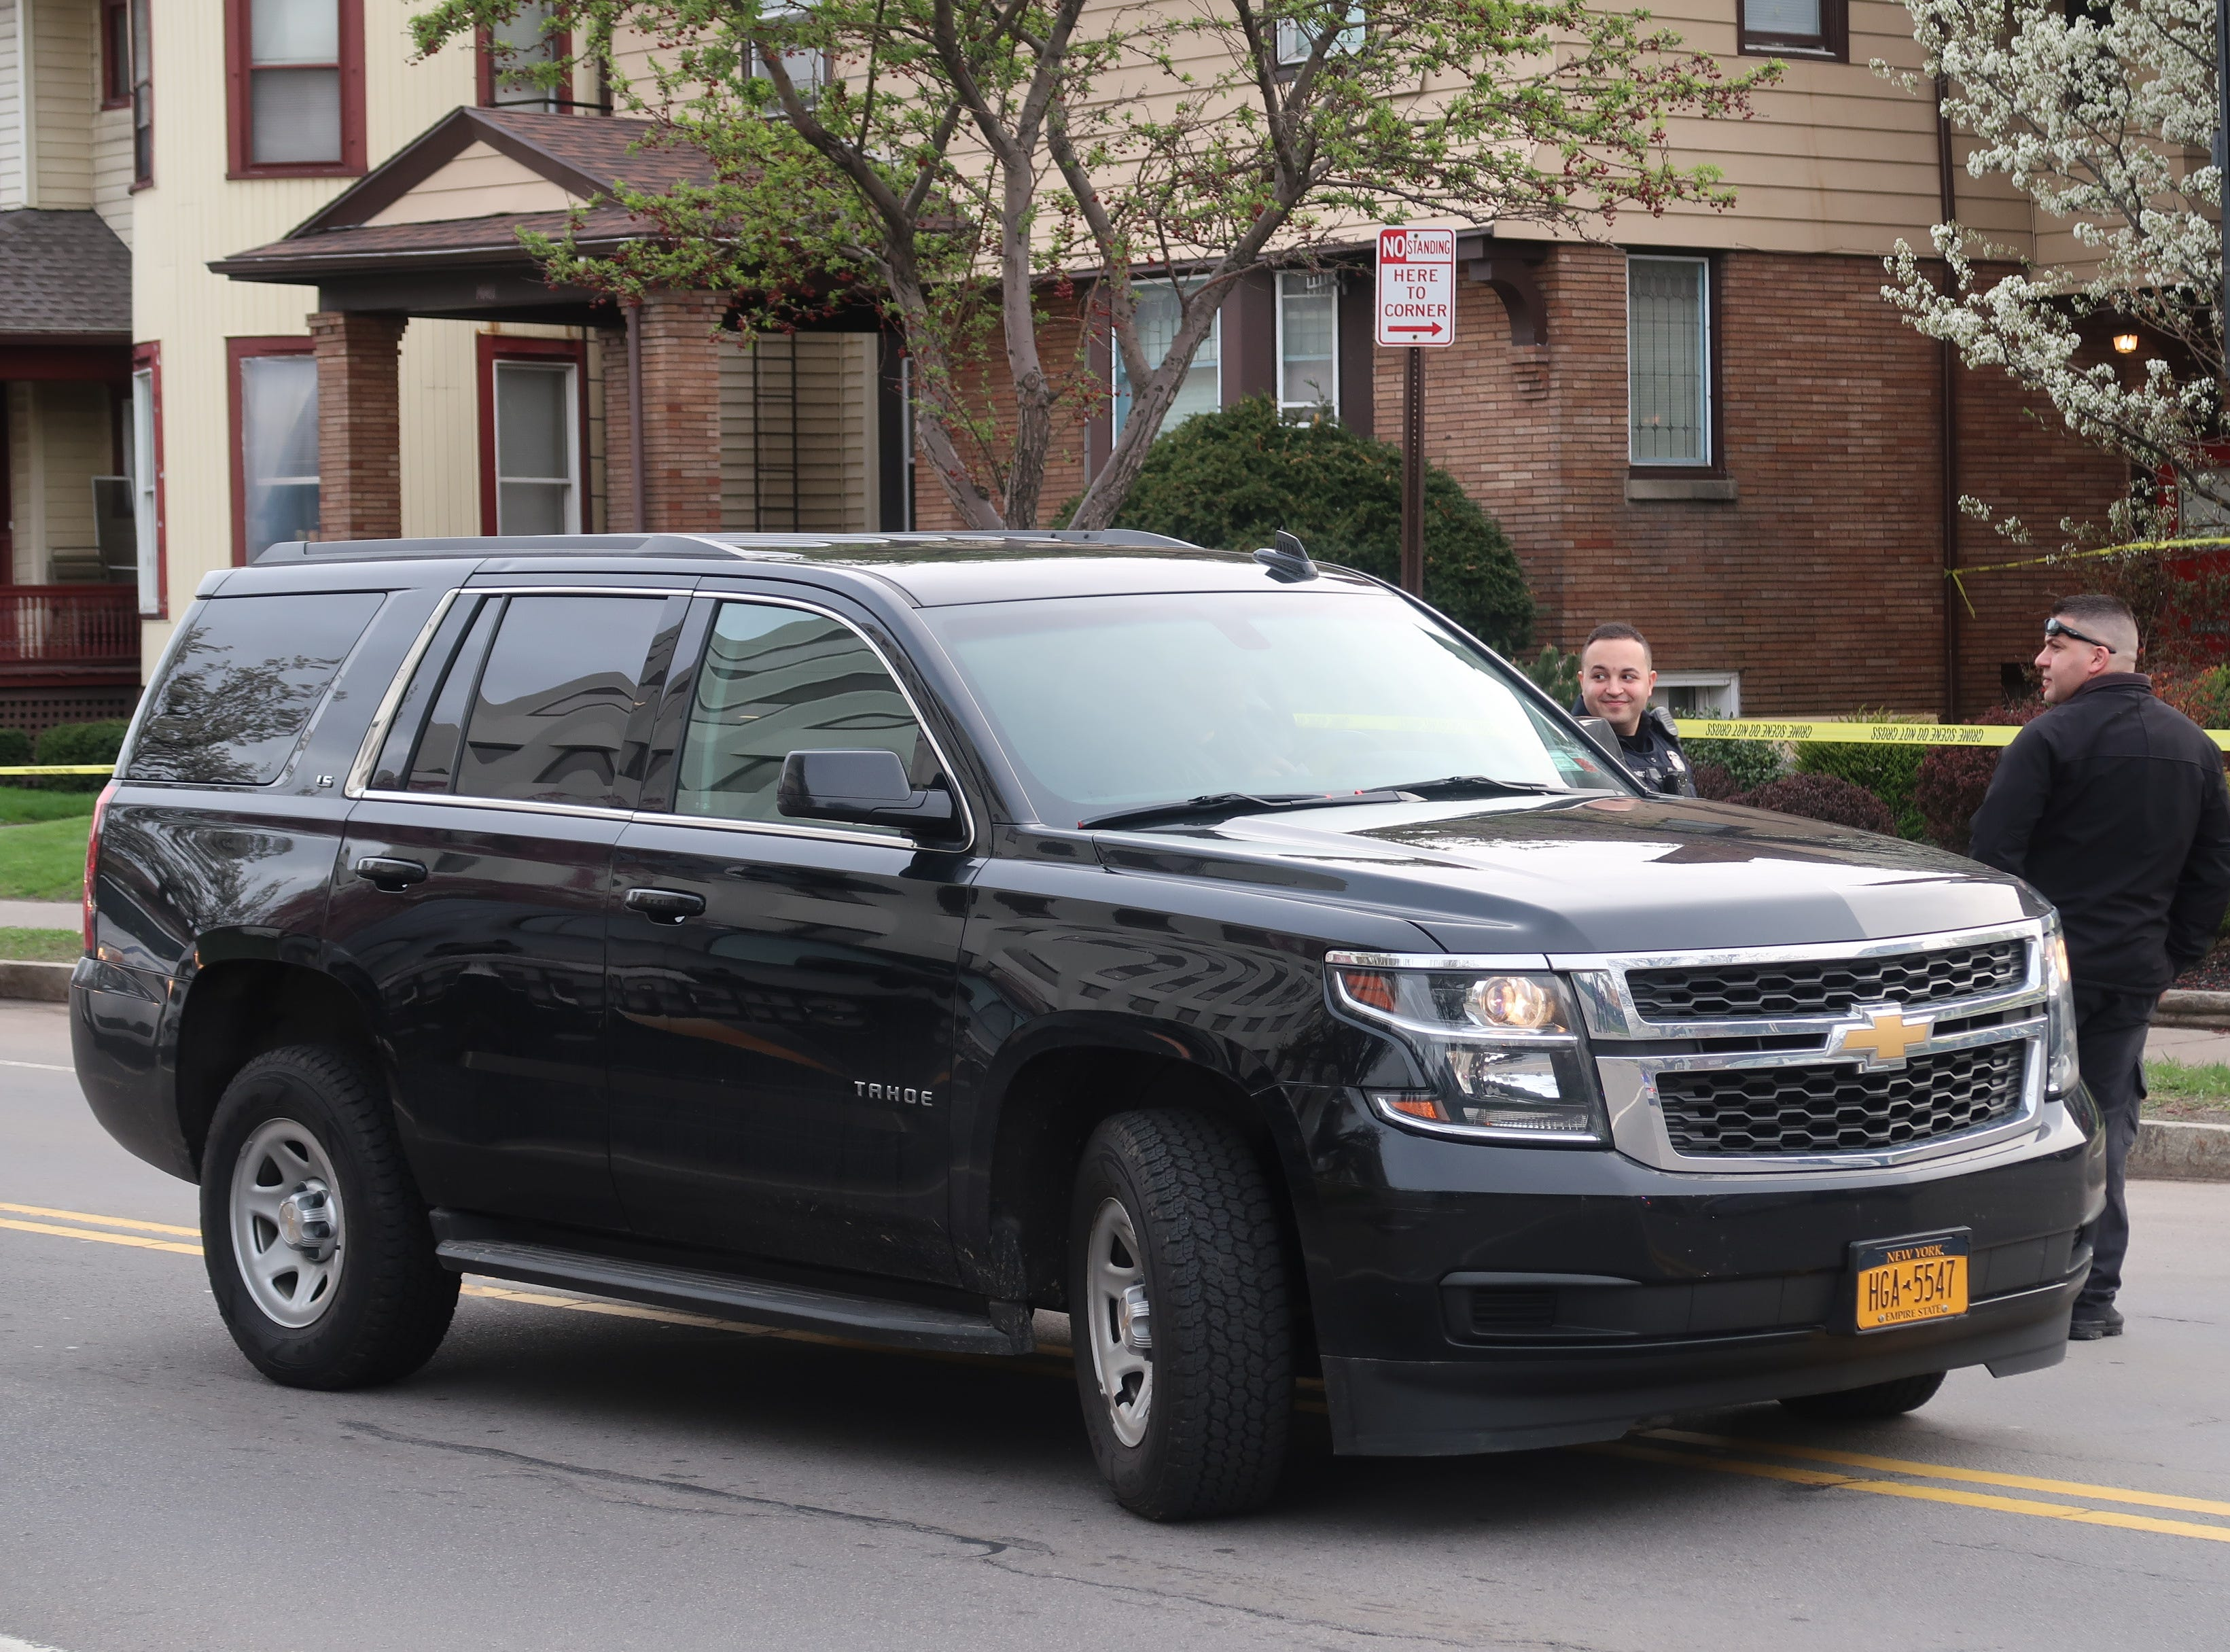 Police investigate after a man was found dead inside a vehicle at 223 Alexander St. on May 4, 2019.